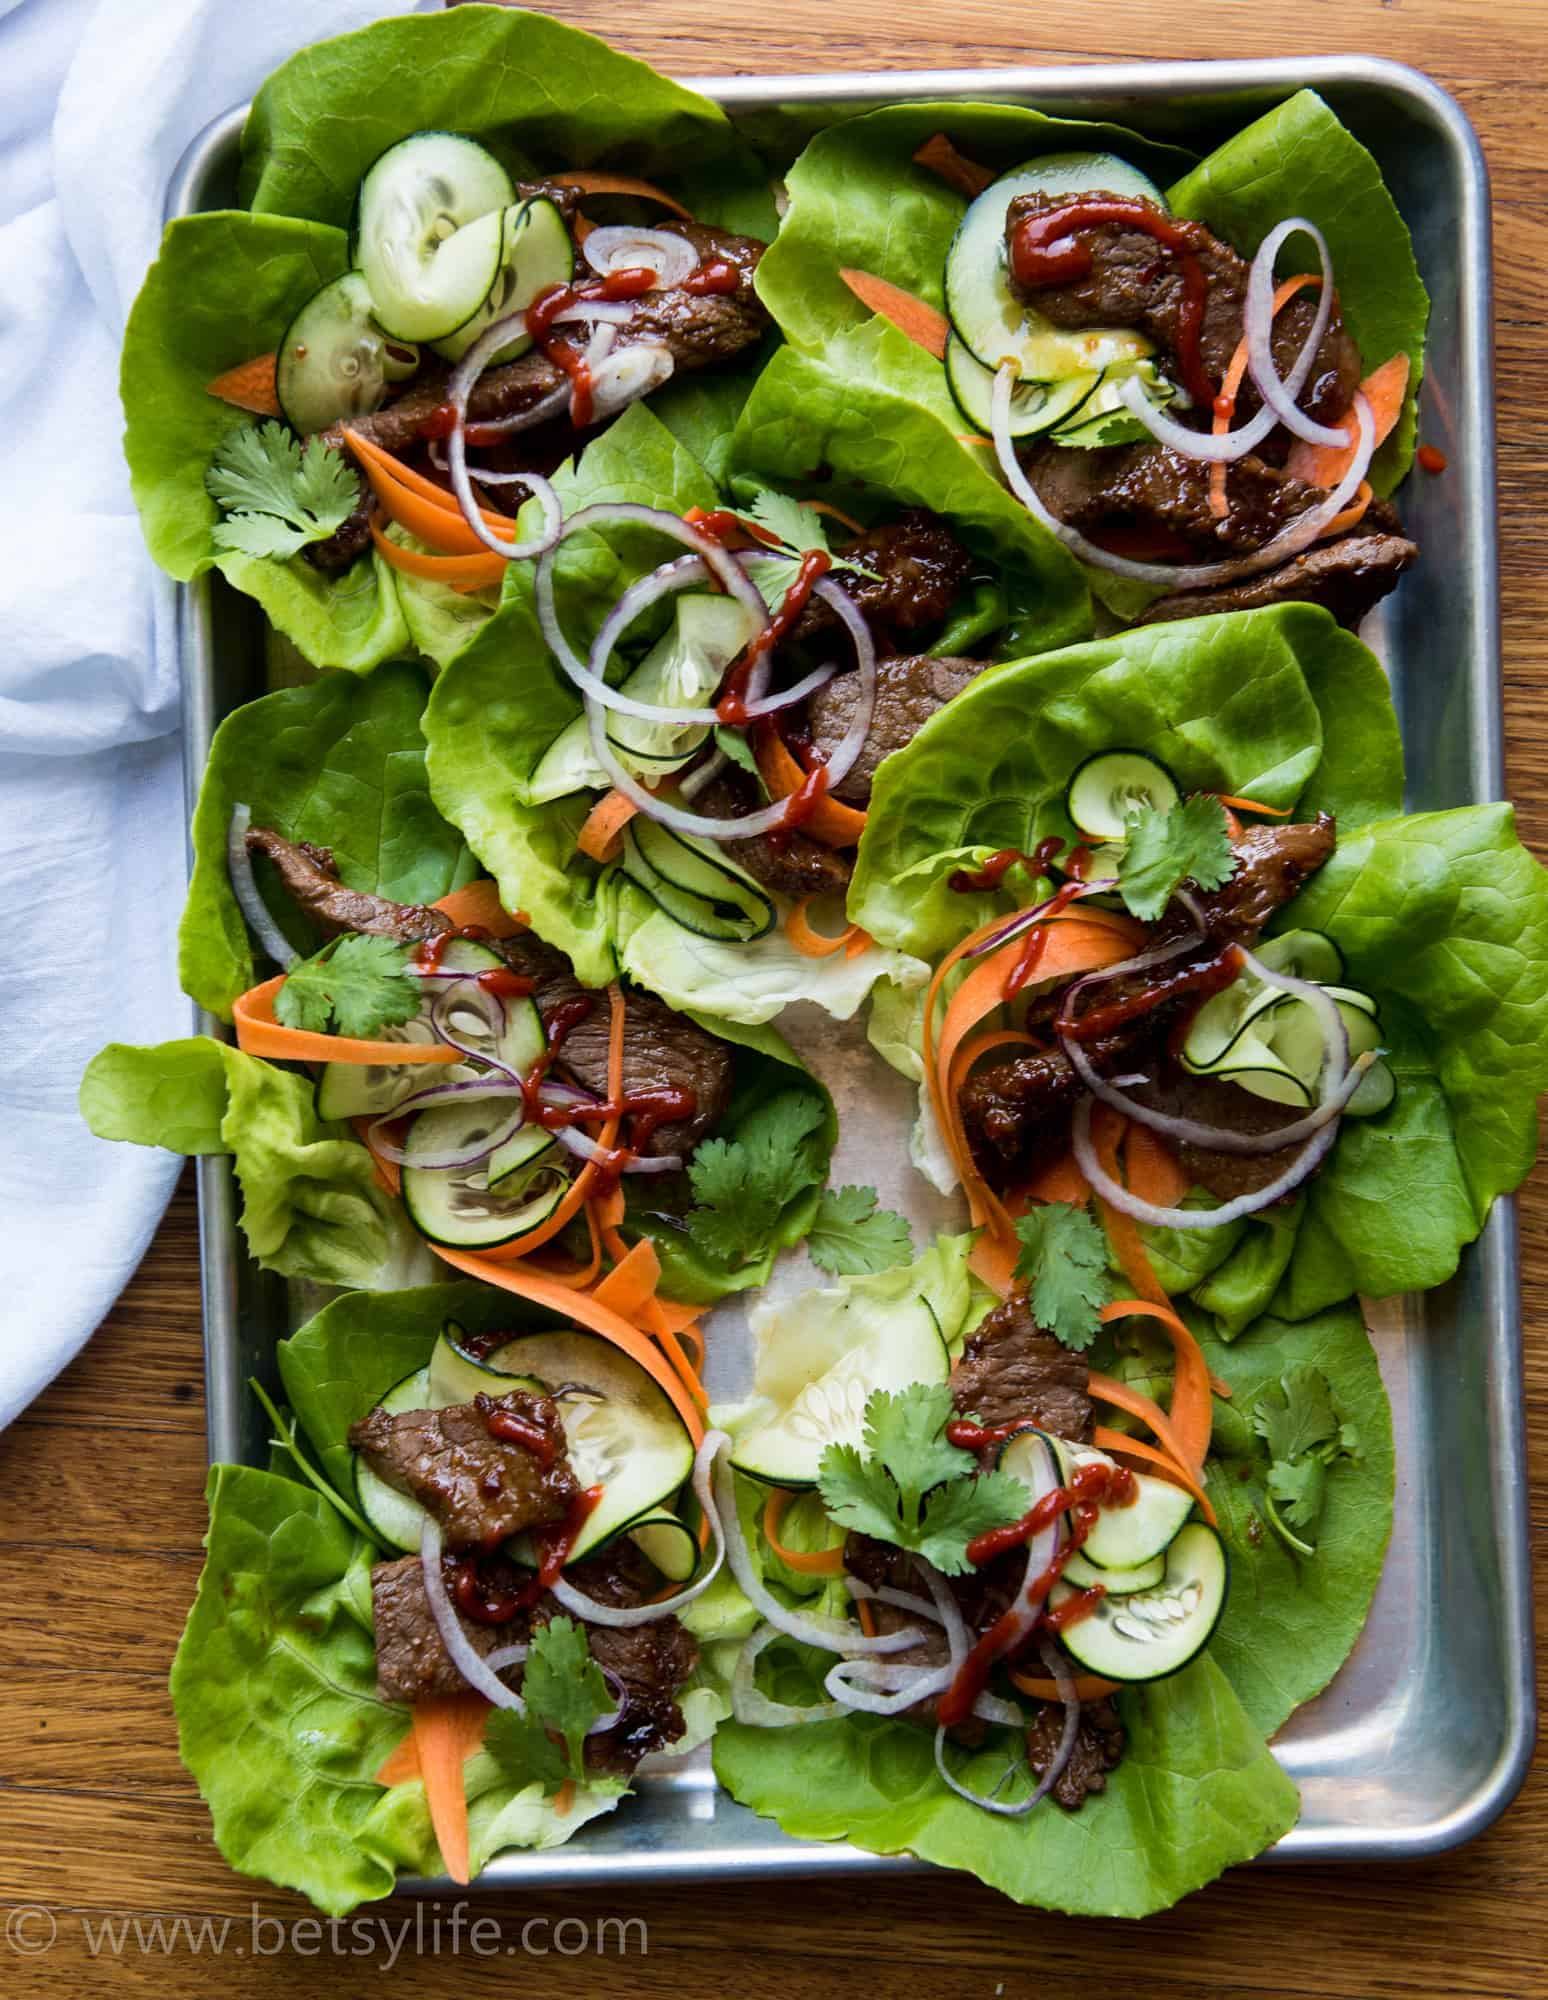 overhead view of a sheet pan filled with lettuce wraps. Lettuce wraps contain steak, thinly sliced carrots, cucumbers, cilantro leaves, and red onion. Drizzled with cilantro.